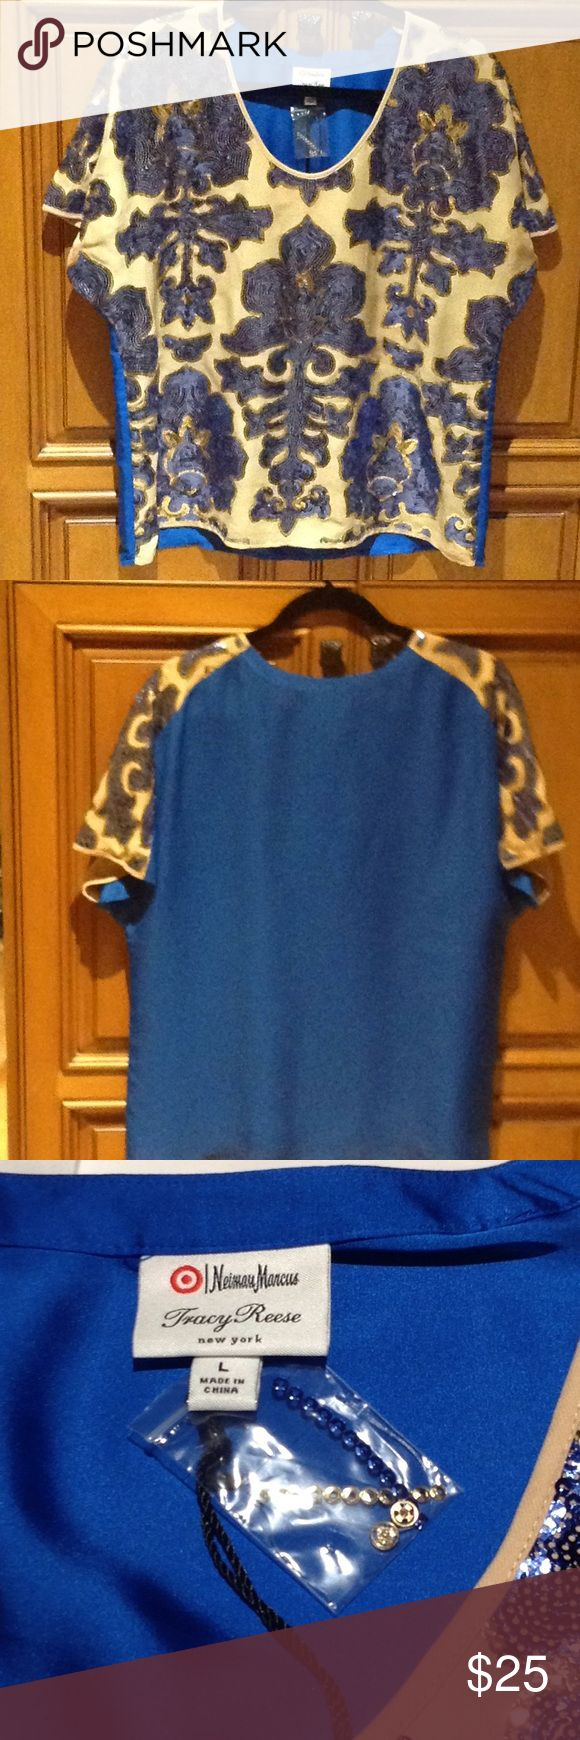 NWT TRACY REESE NEIMAN MARCUS FOR TARGET BLOUSE LG NWT TRACY REESE NEIMAN MARCUS COR TARGET LADIES BLOUSE SIZE LARGE. ECRU/BLUE W SEQUINS. TRACY REESE Tops Tunics